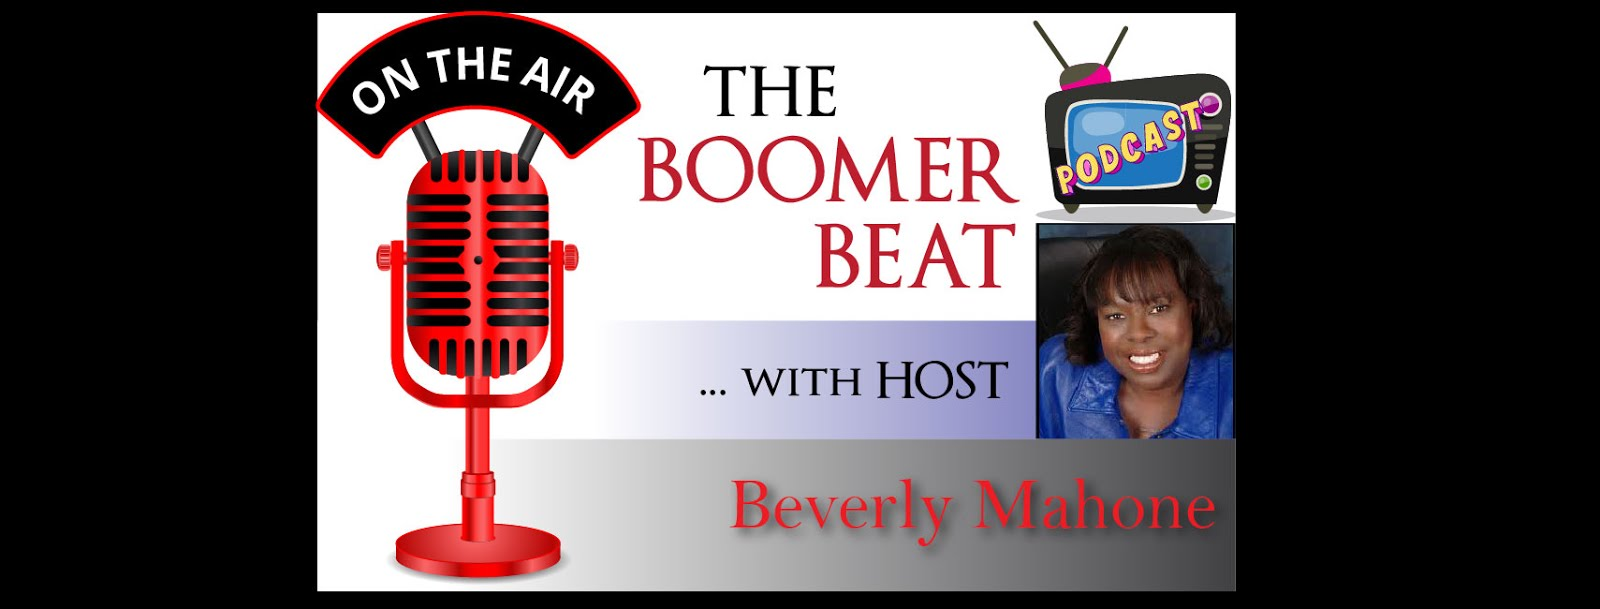 The Boomer Beat Video Podcast